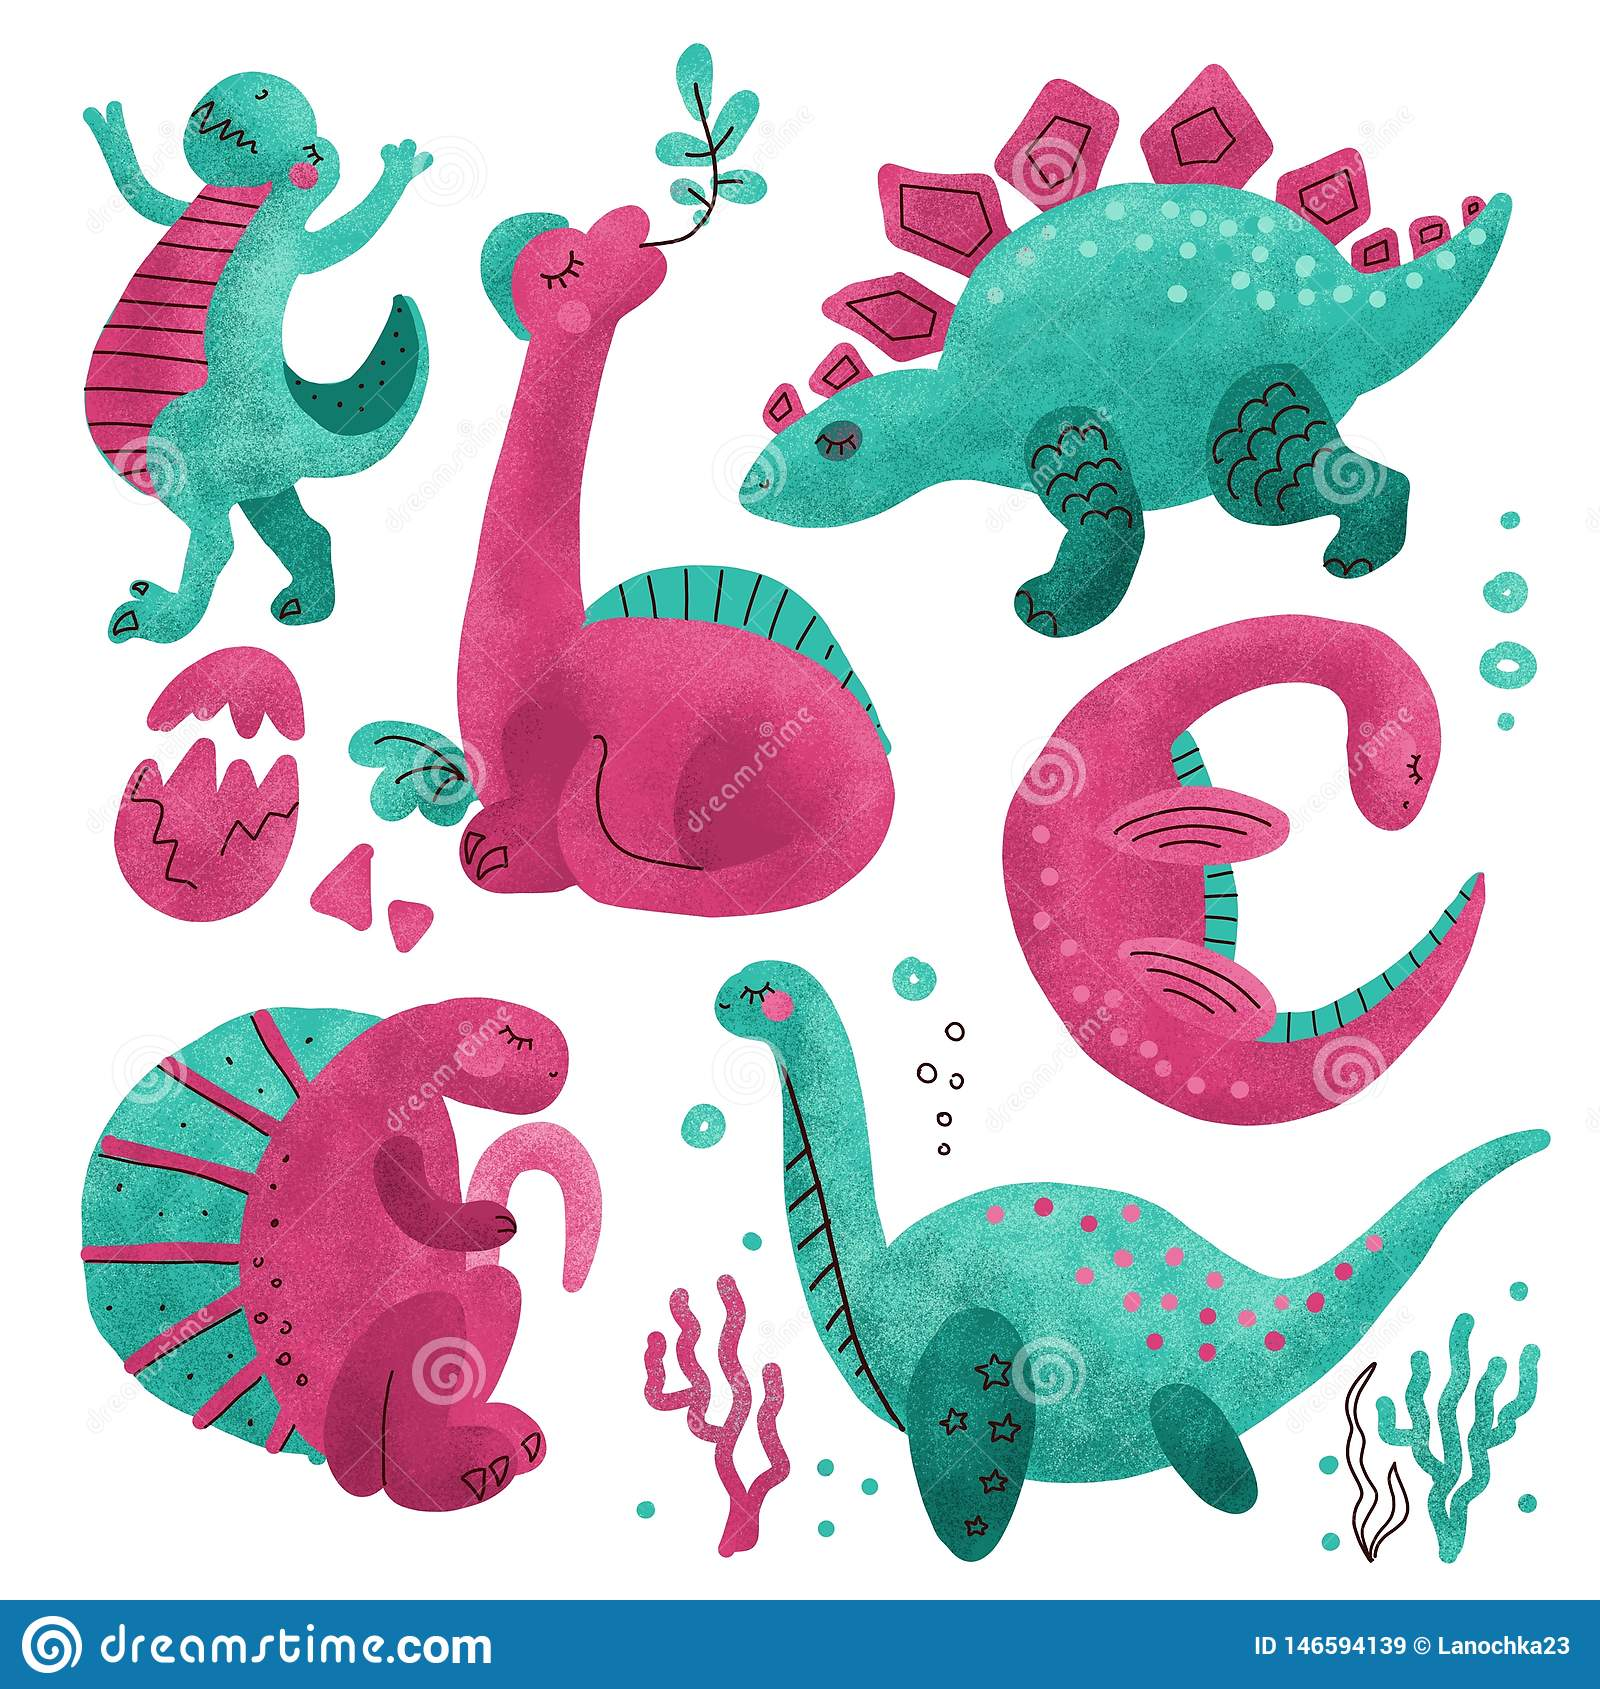 Set of 5 Cute dinosaur color hand drawn textured characters. Dino flat handdrawn clipart. Sketch jurassic reptile.Brachiosaurus.